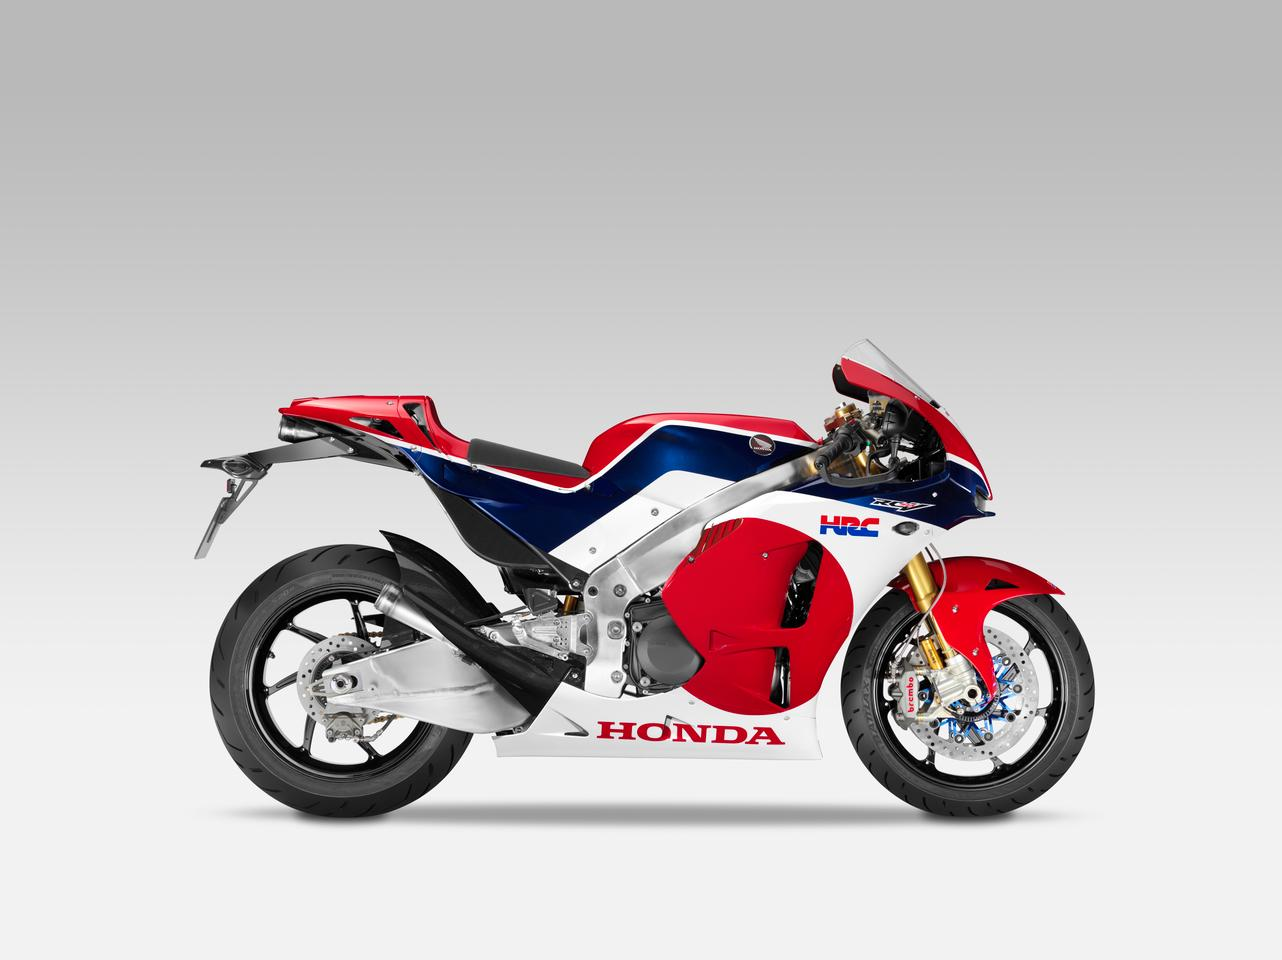 The Honda RC213V-S prototype: a MotoGP bike for the road